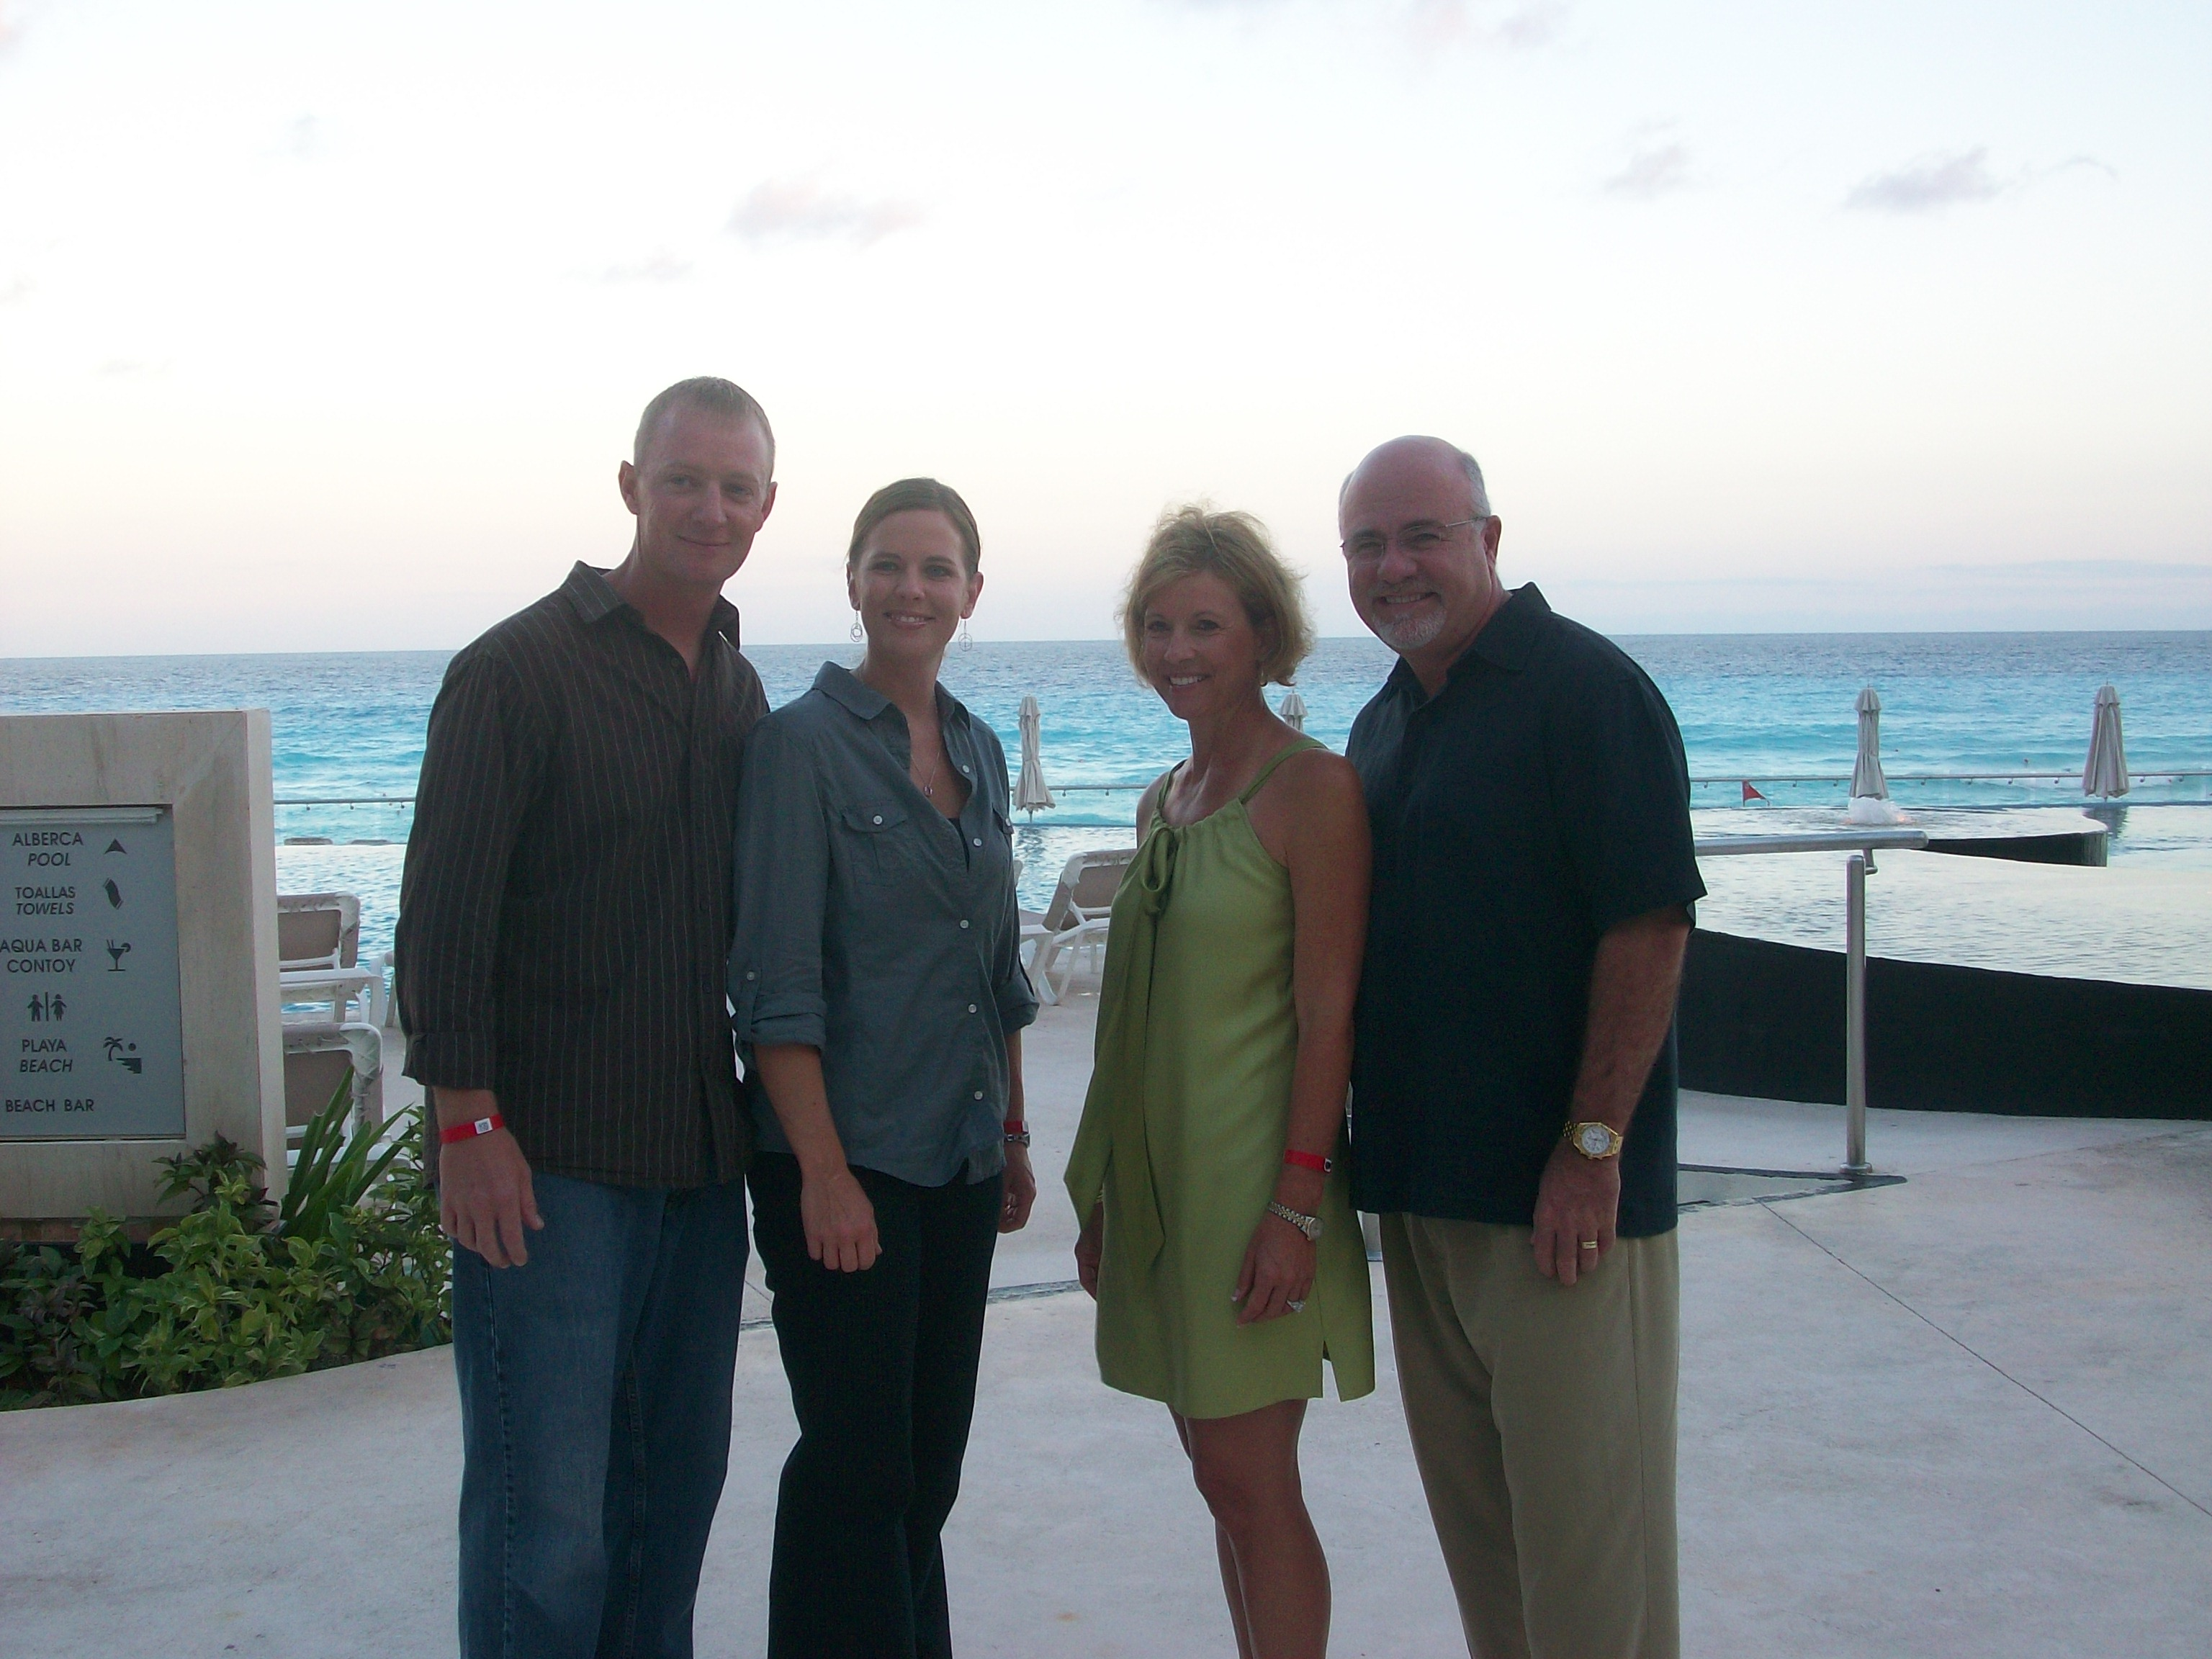 dave ramsey family - photo #33